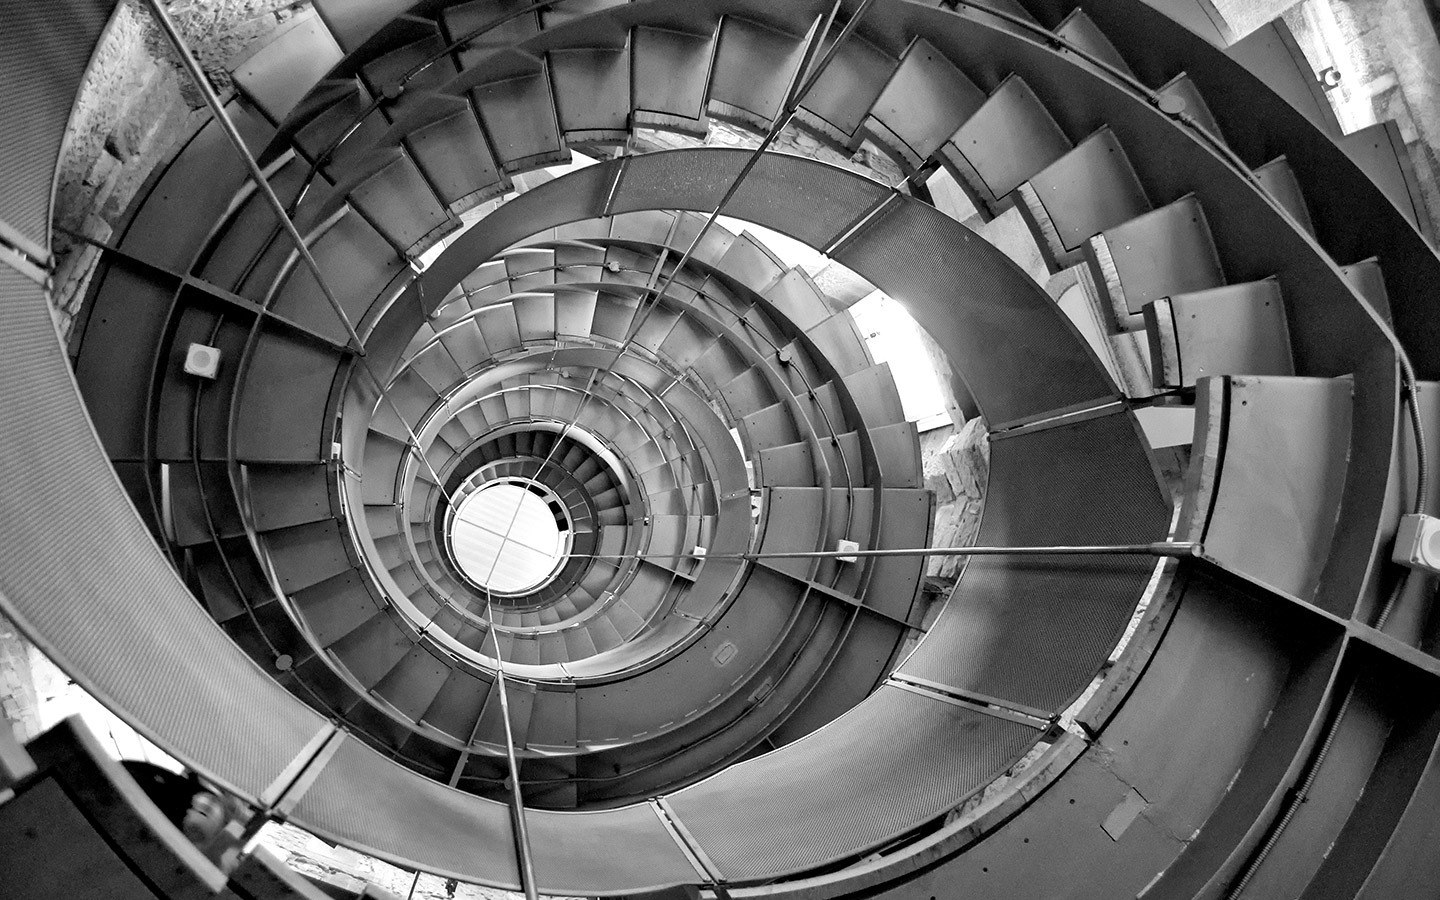 Stairs in the Lighthouse's old water tower